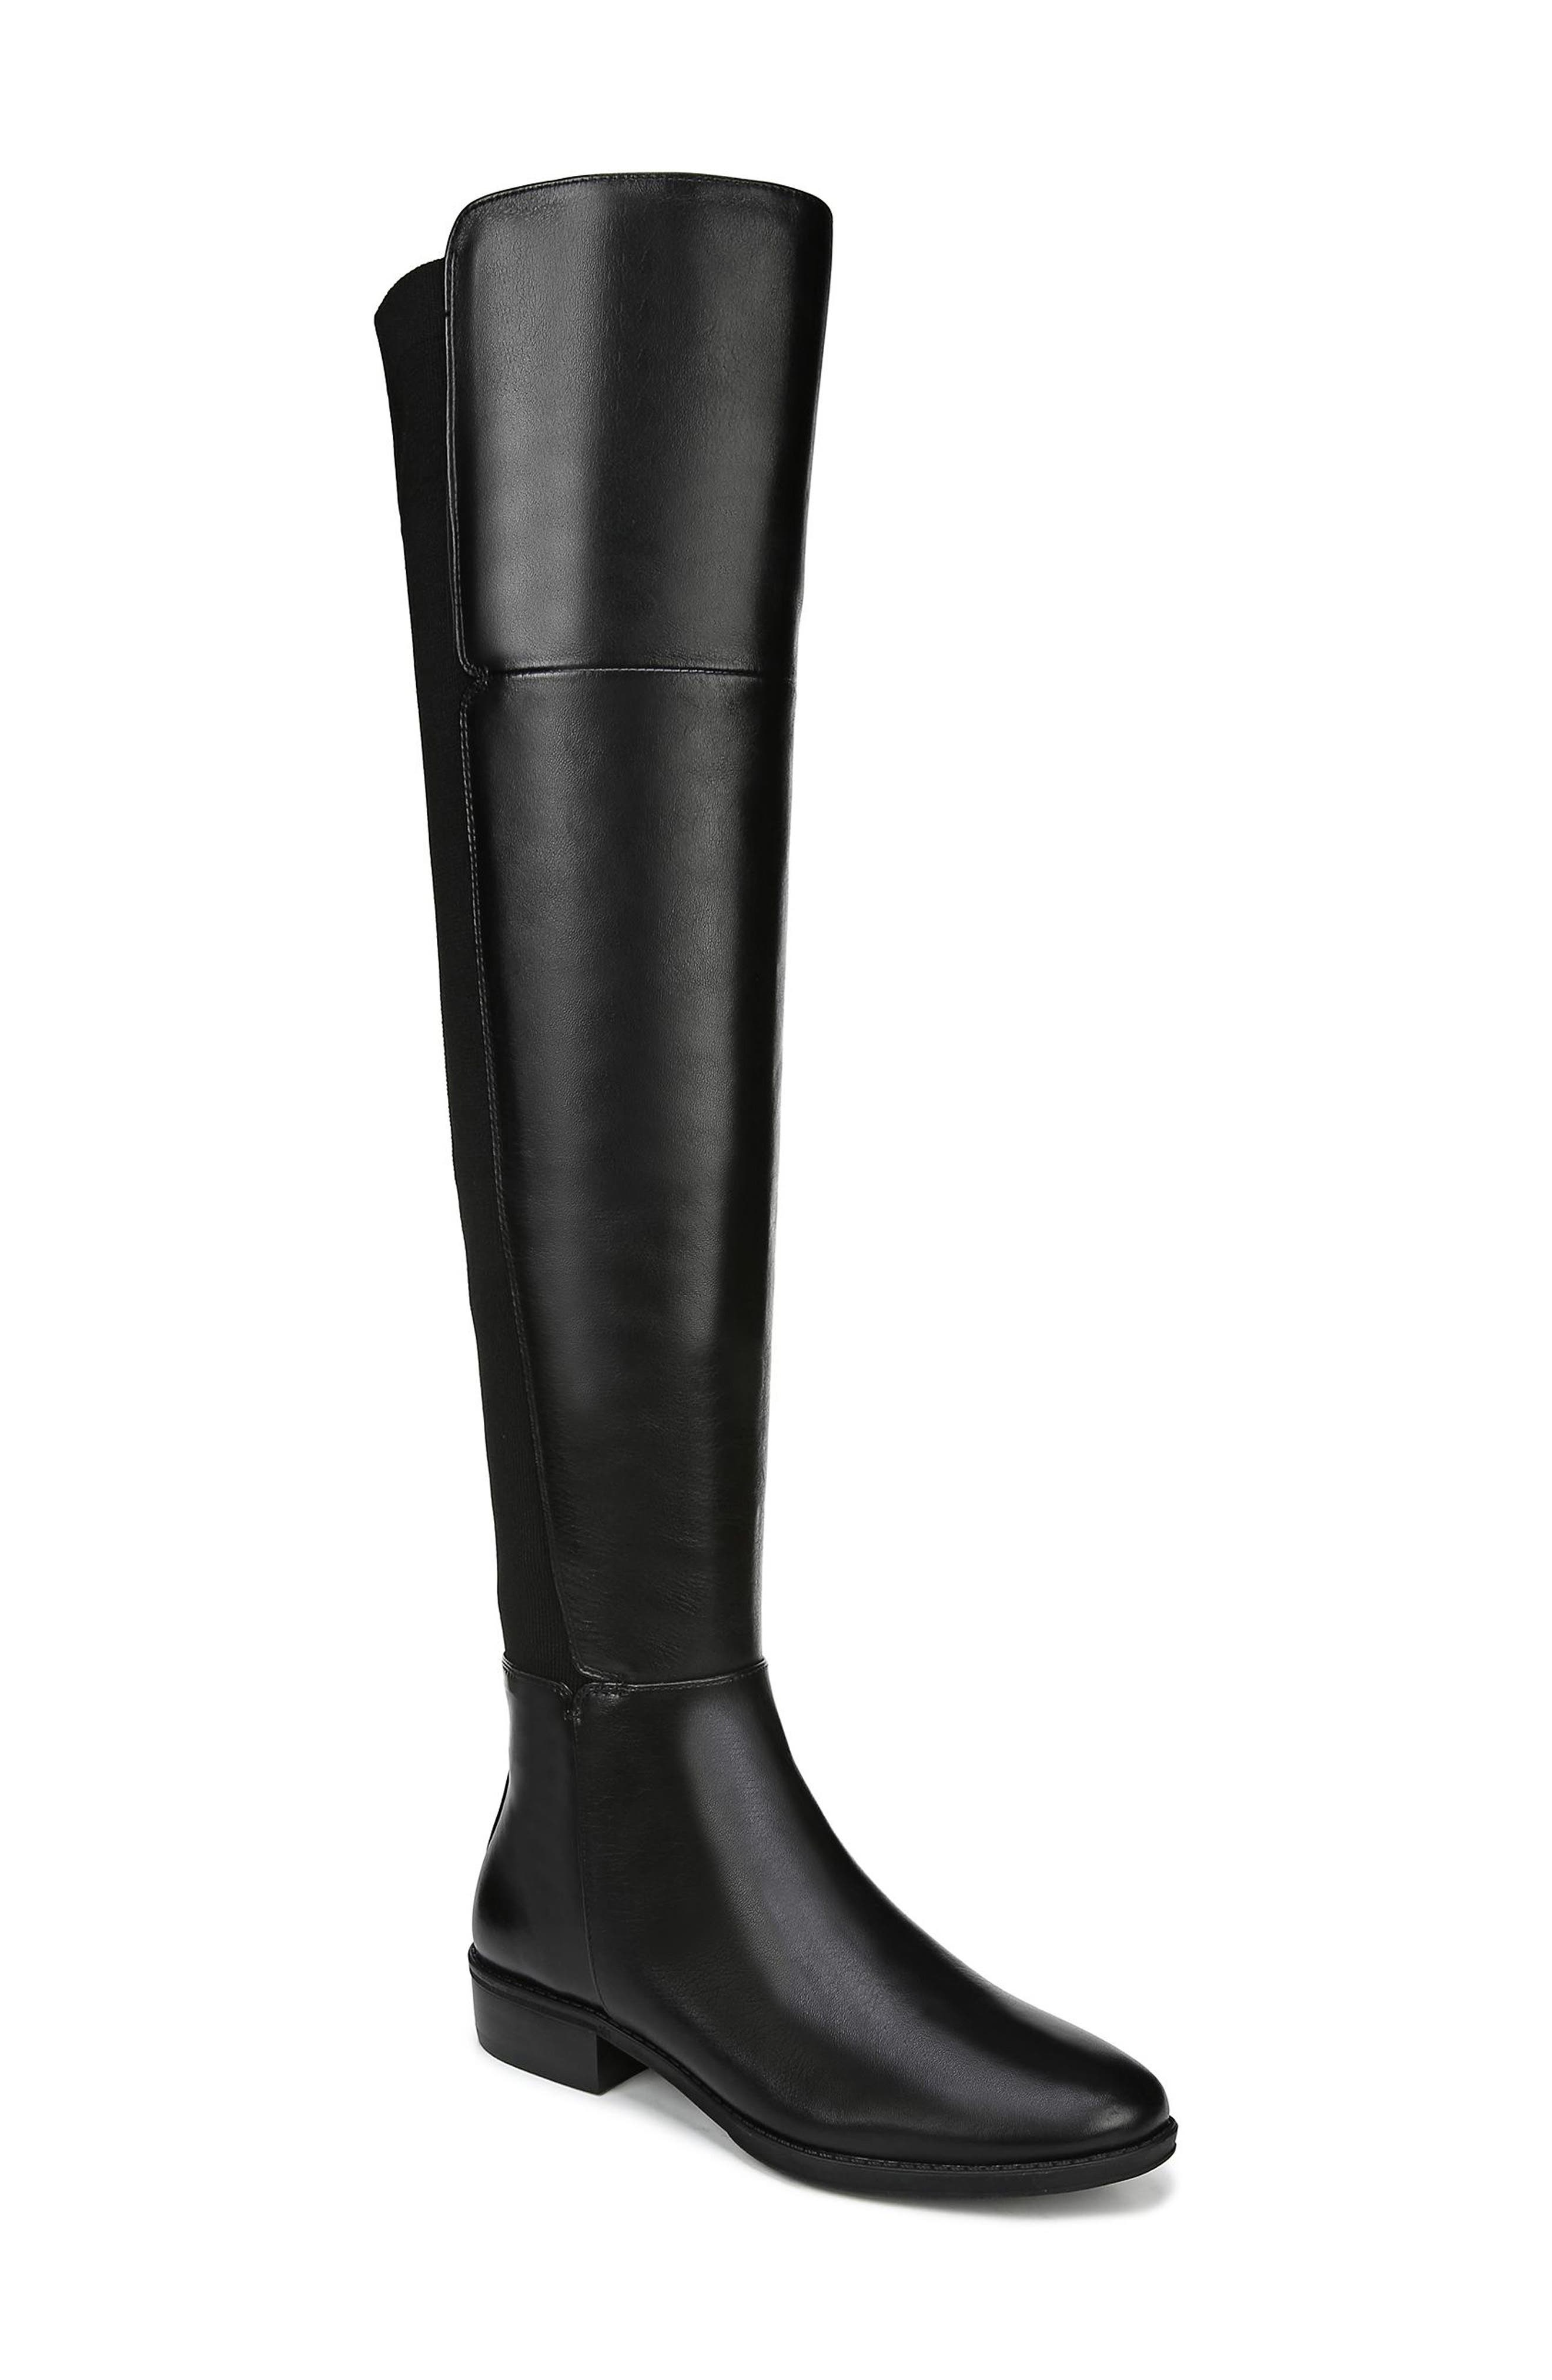 Pam Over the Knee Boot,                             Main thumbnail 1, color,                             BLACK LEATHER